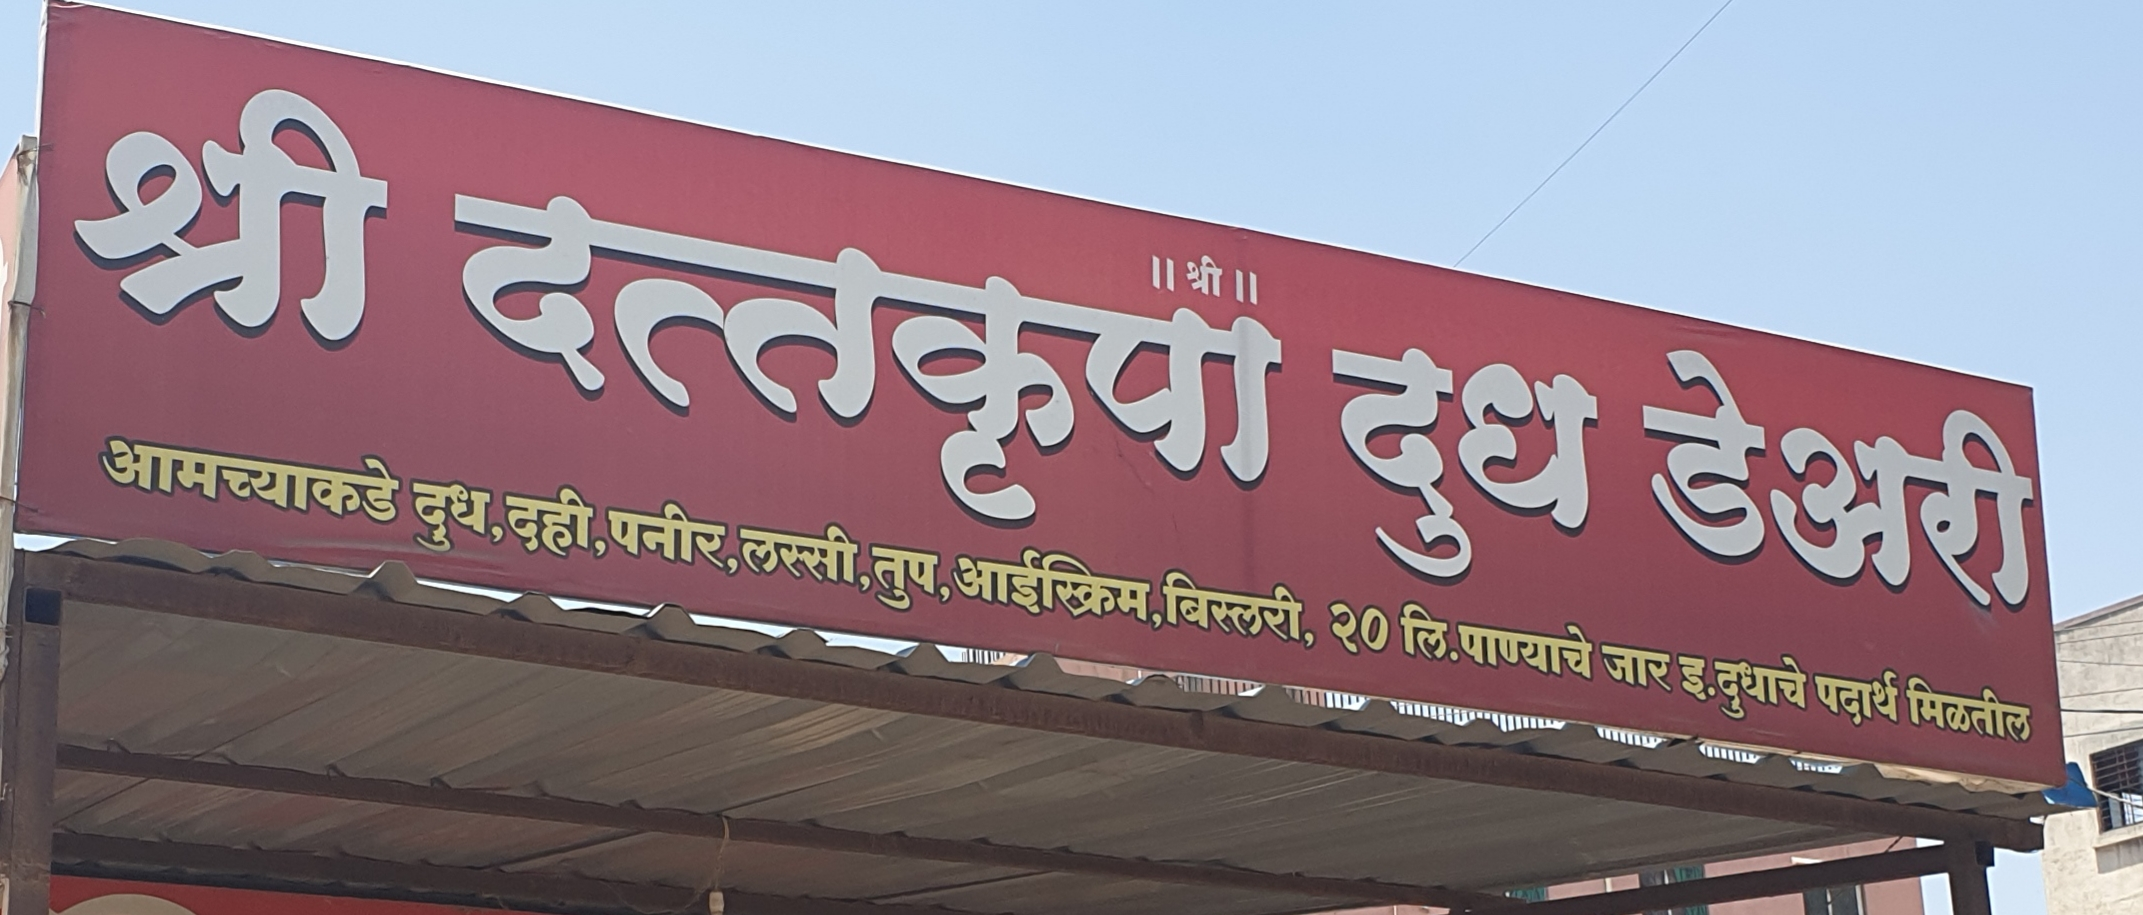 Shree dattakrupa dudh dairy Dairy in Wagholi Pune